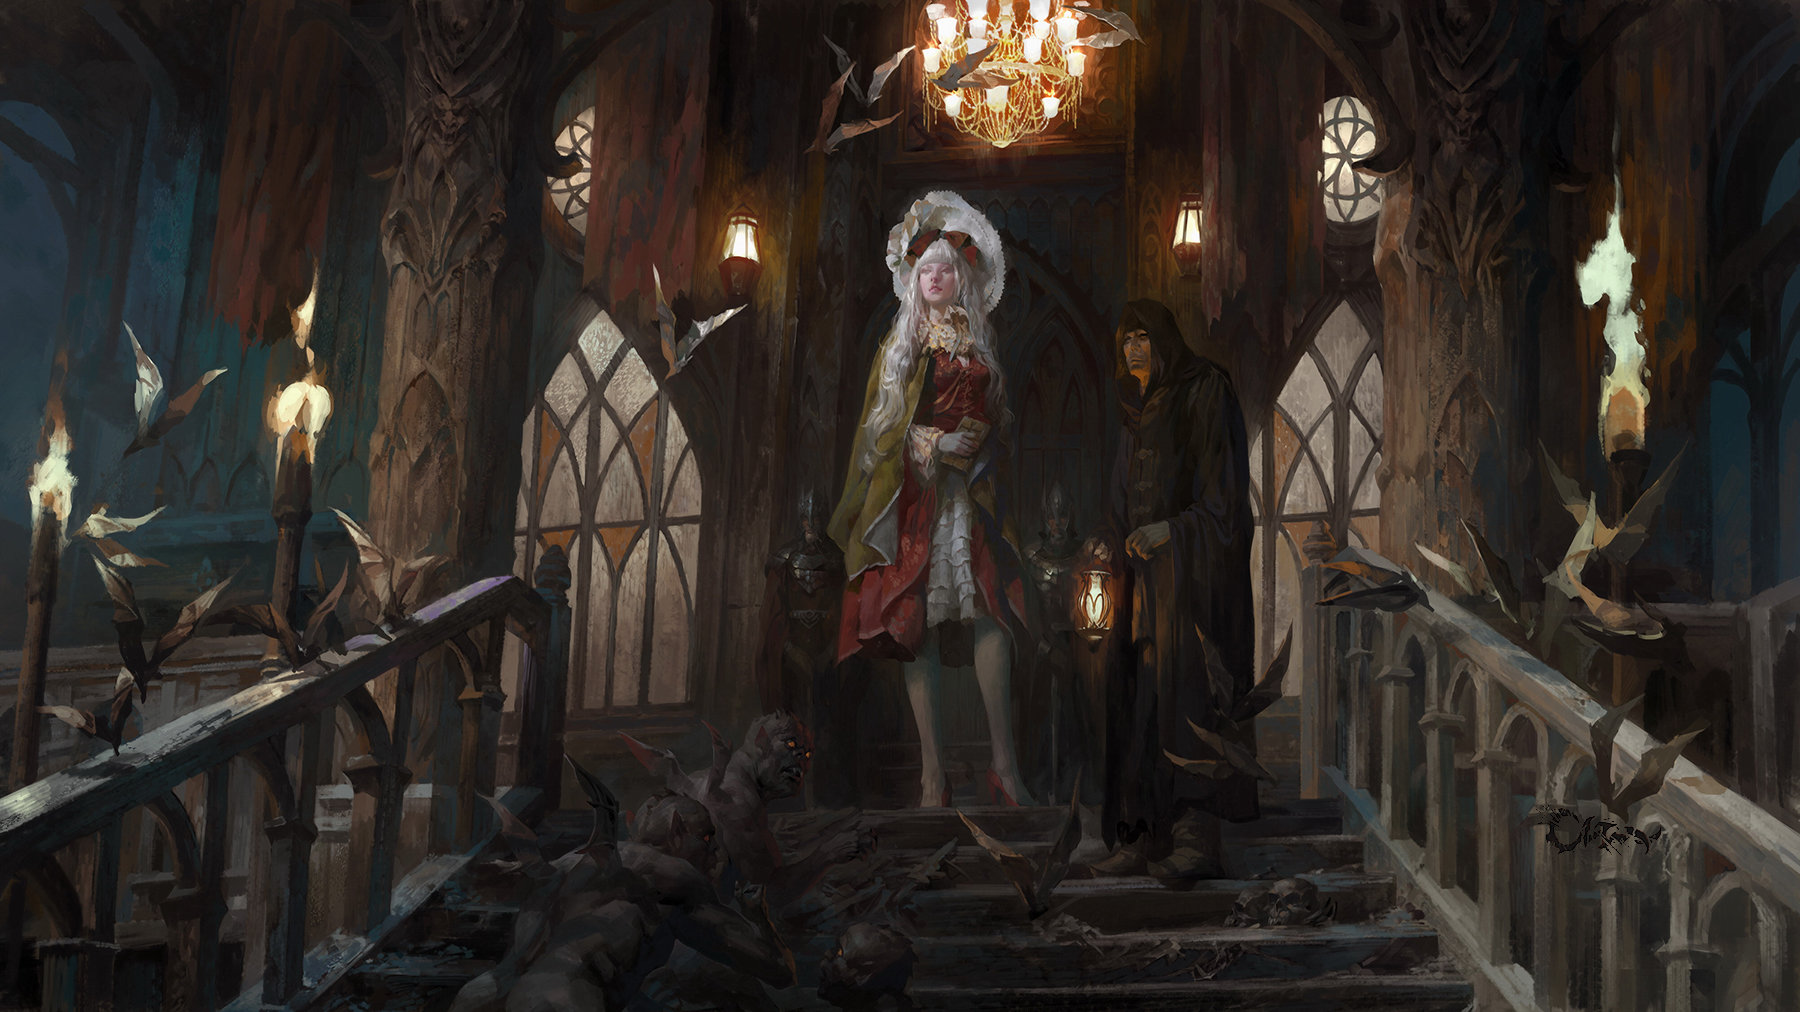 Wei Feng Digital Painting Illustration vampire castle white woman red dress